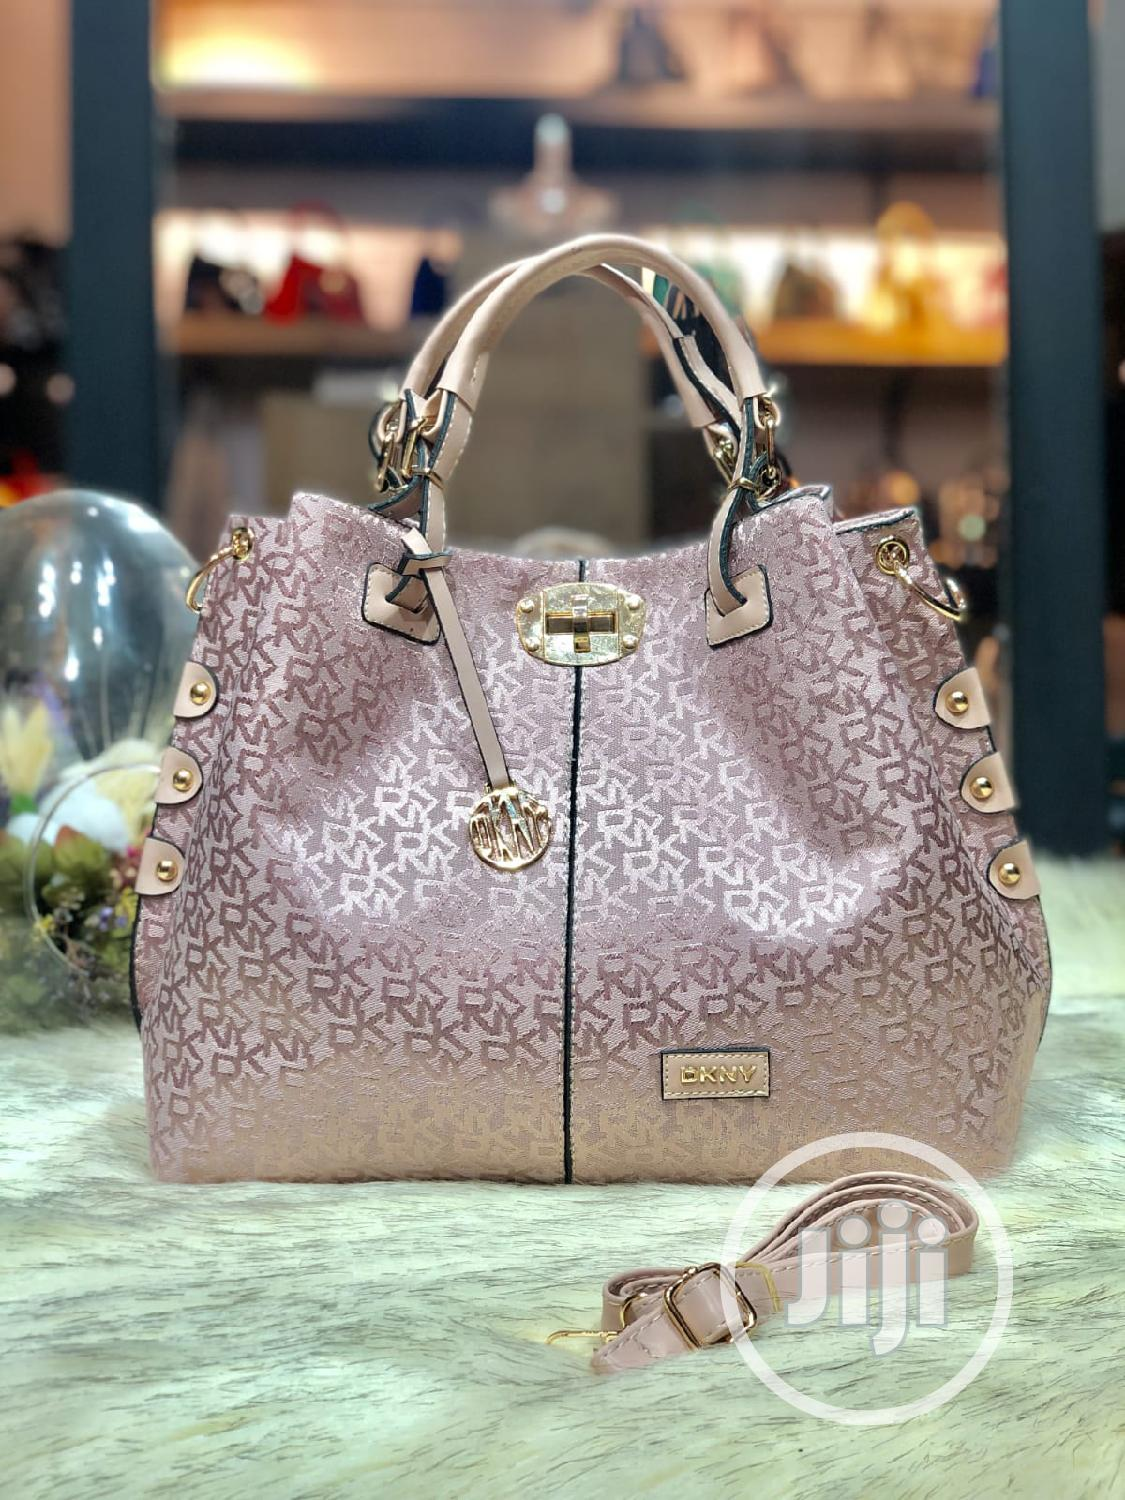 Archive: Turkey High Quality Handbags for Ladies/Women in Colors